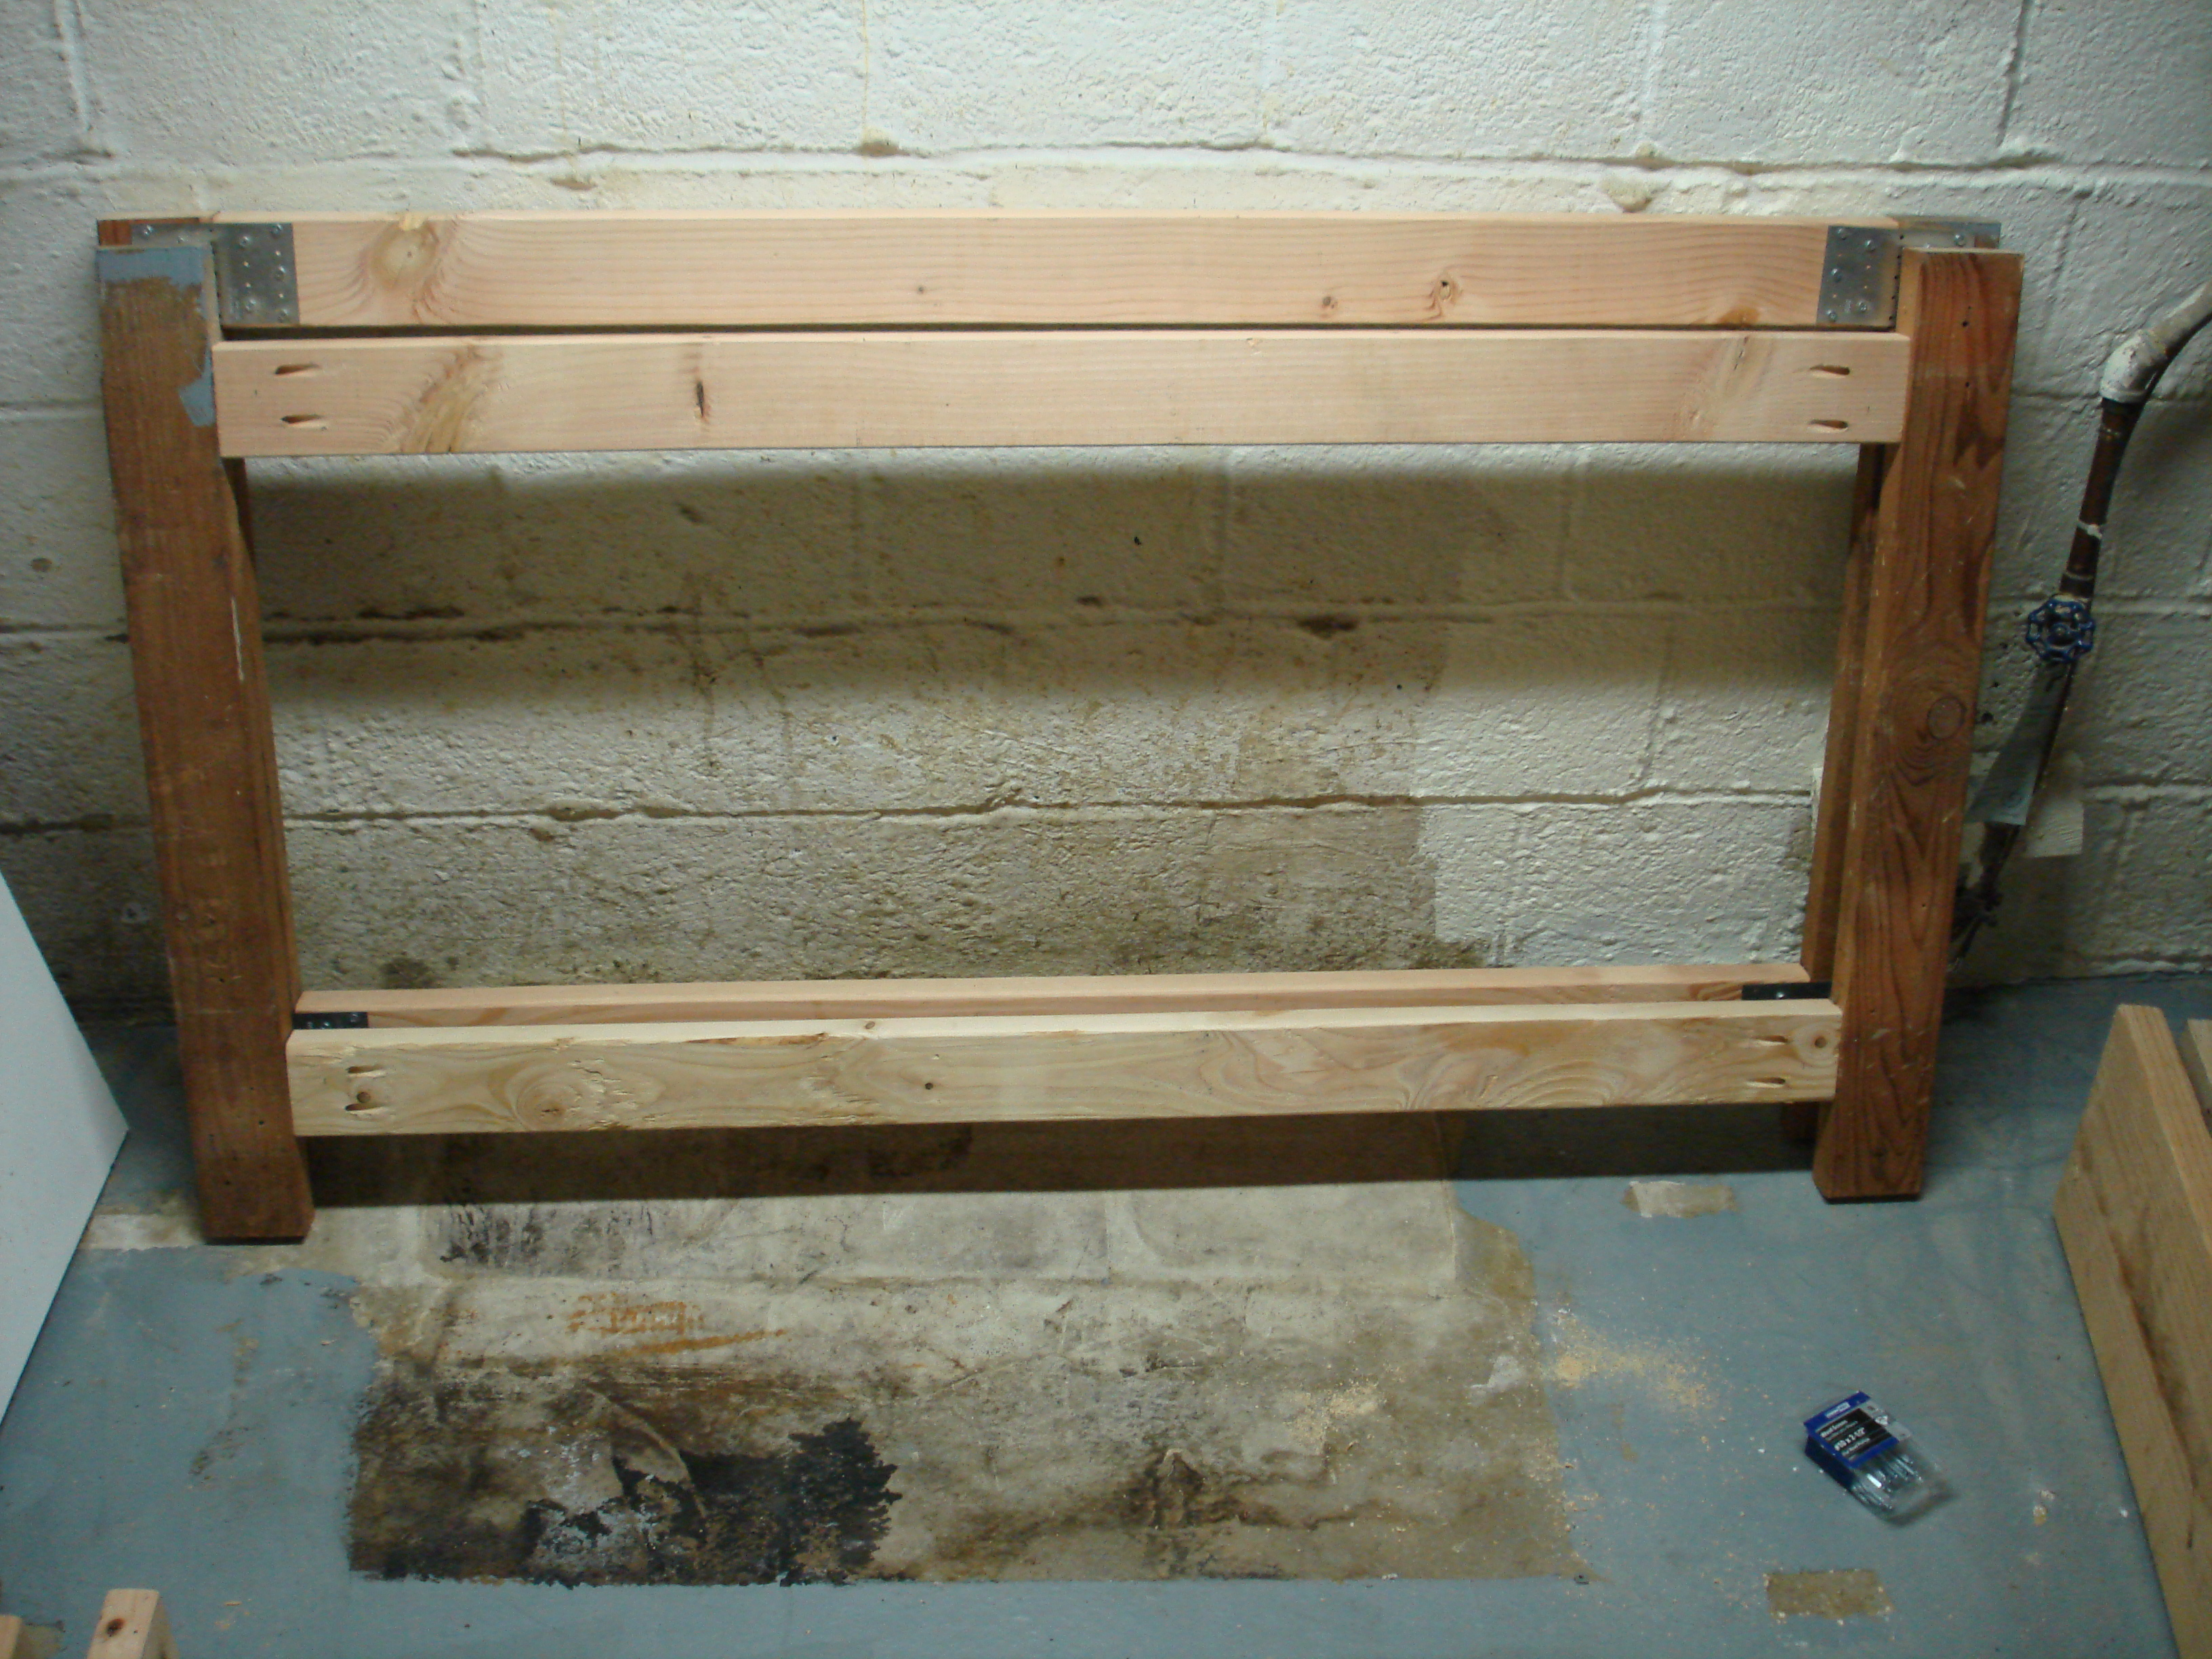 Here are the front and back frames.  The legs are salvaged from the old bench